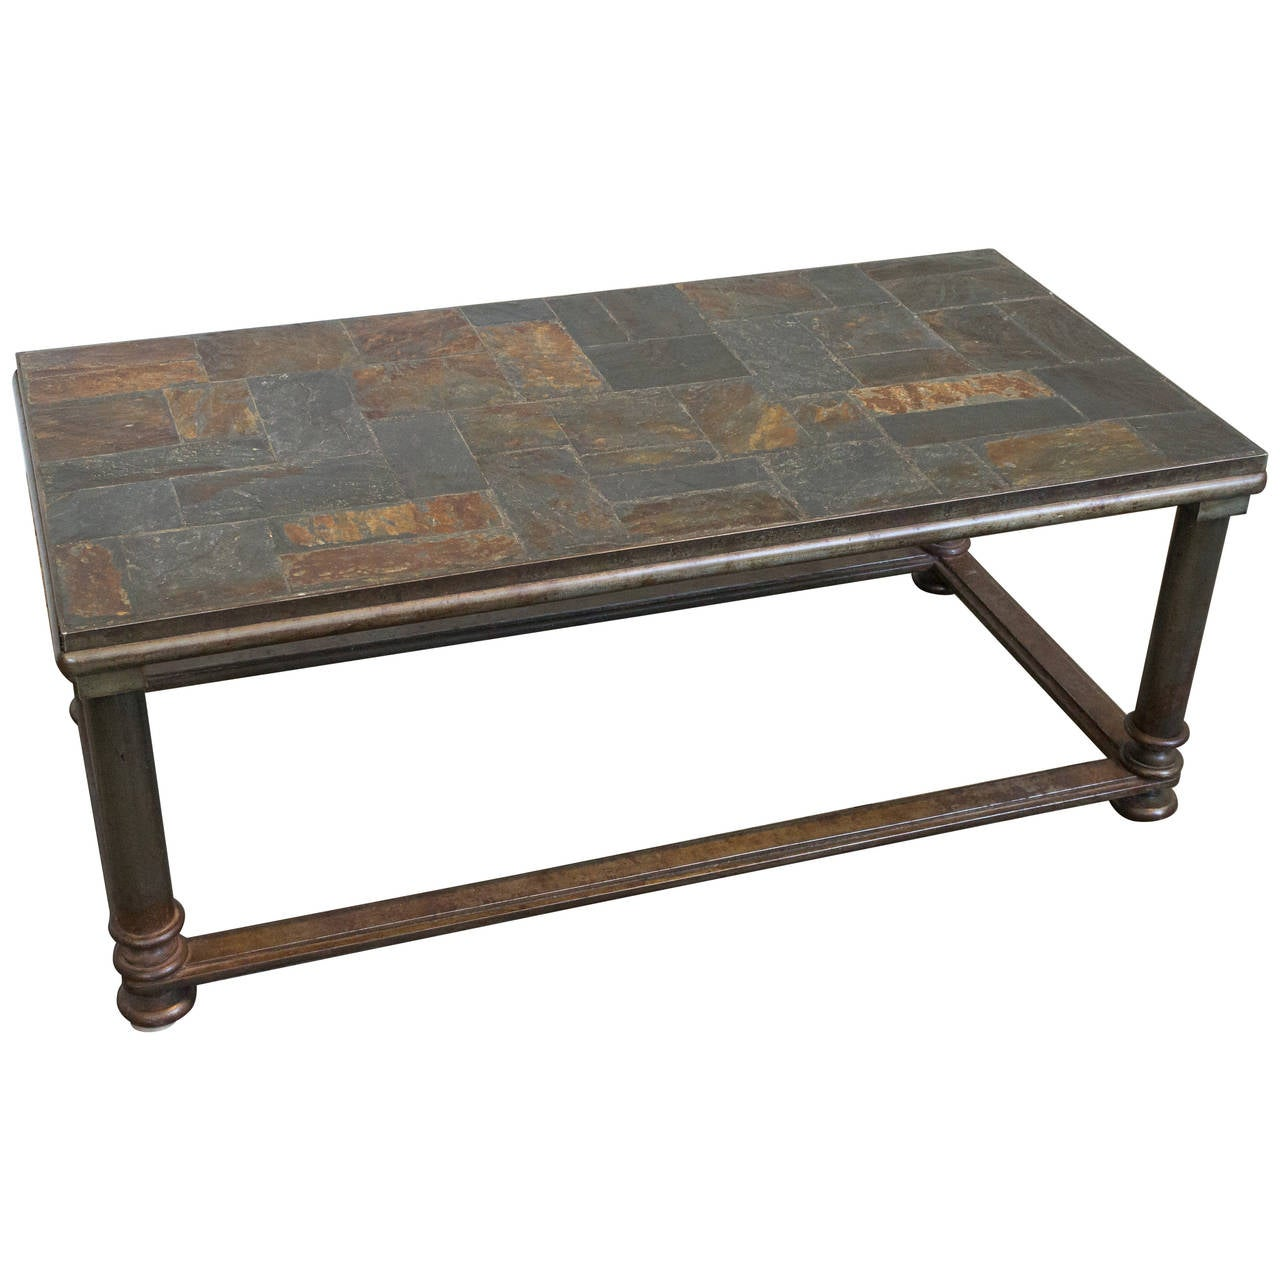 Unusual French Stone And Iron Coffee Table At 1stdibs